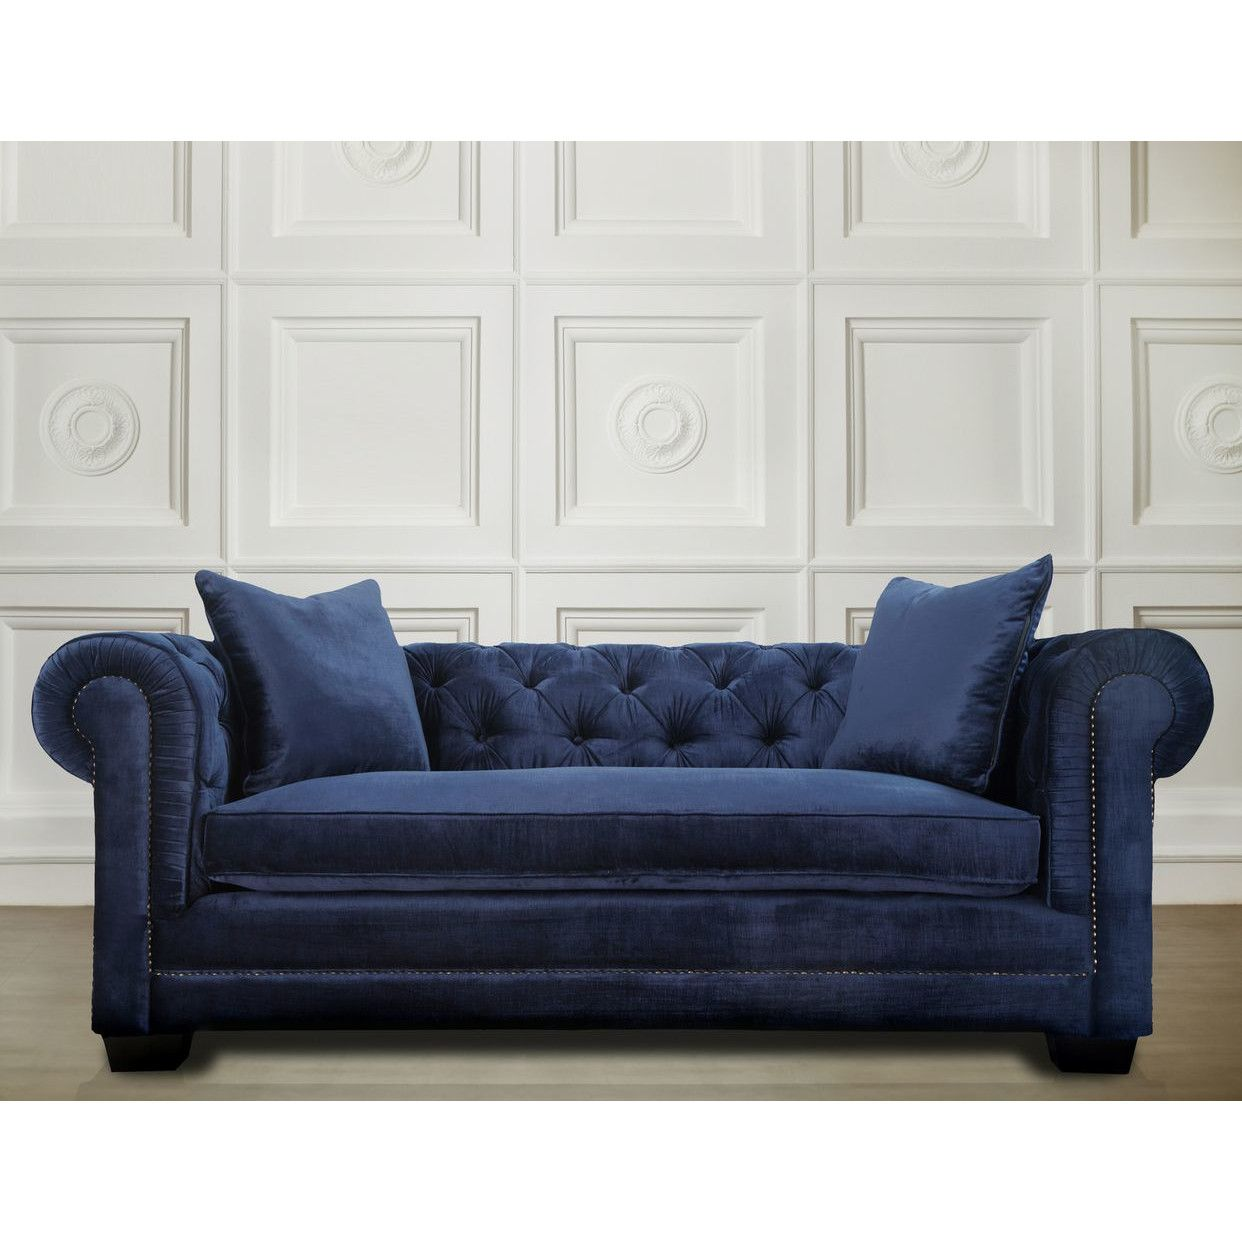 Modern Living Room Furniture Luxury Velvet Blue Sofa Removable ...